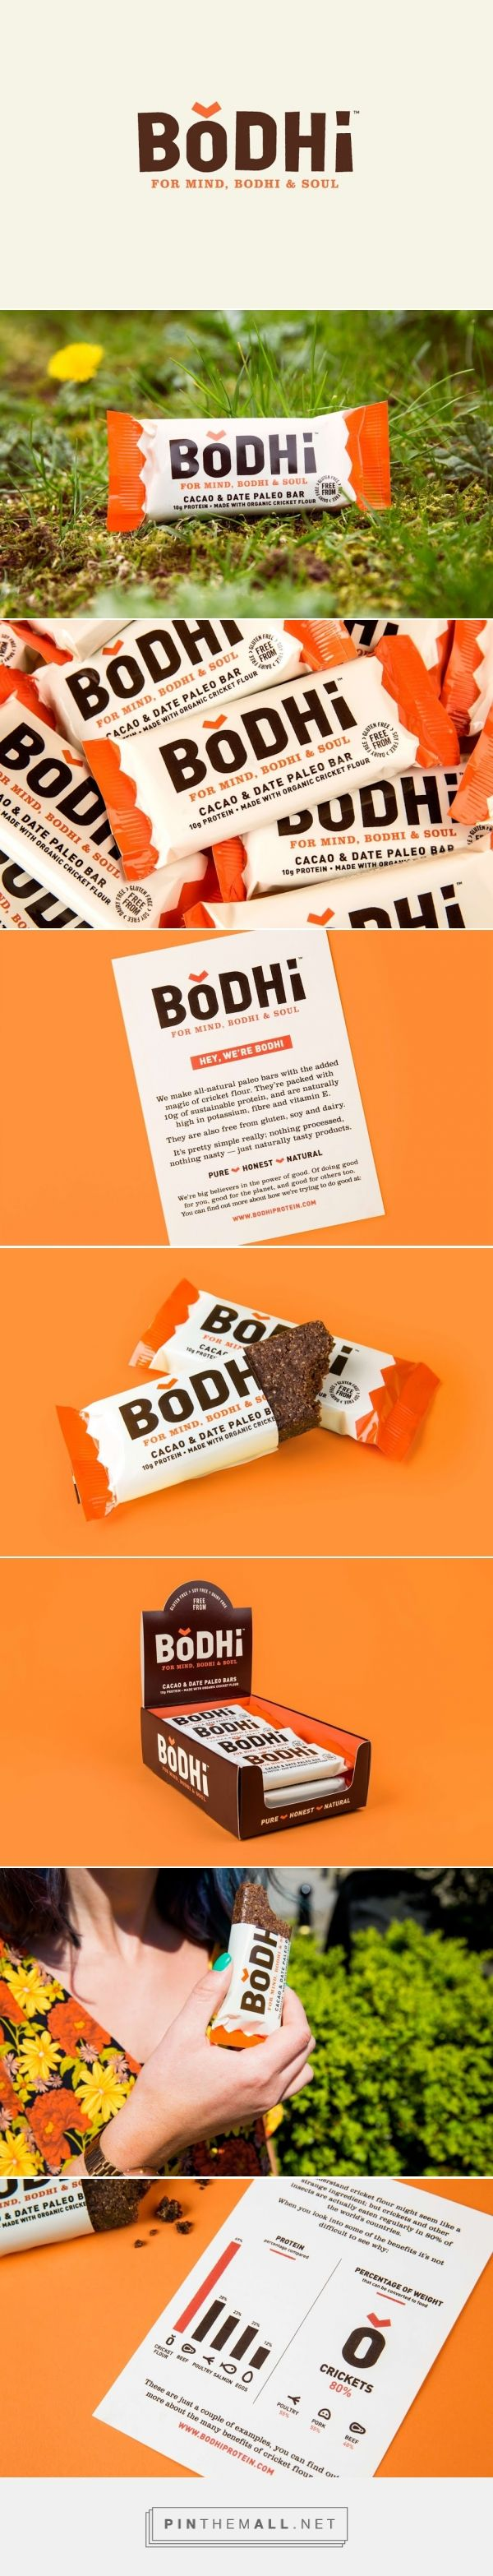 Bodhi Paleo And Protein Bars - Packaging of the World - Creative Package Design Gallery - http://www.packagingoftheworld.com/2016/05/bodhi-paleo-and-protein-bars.html